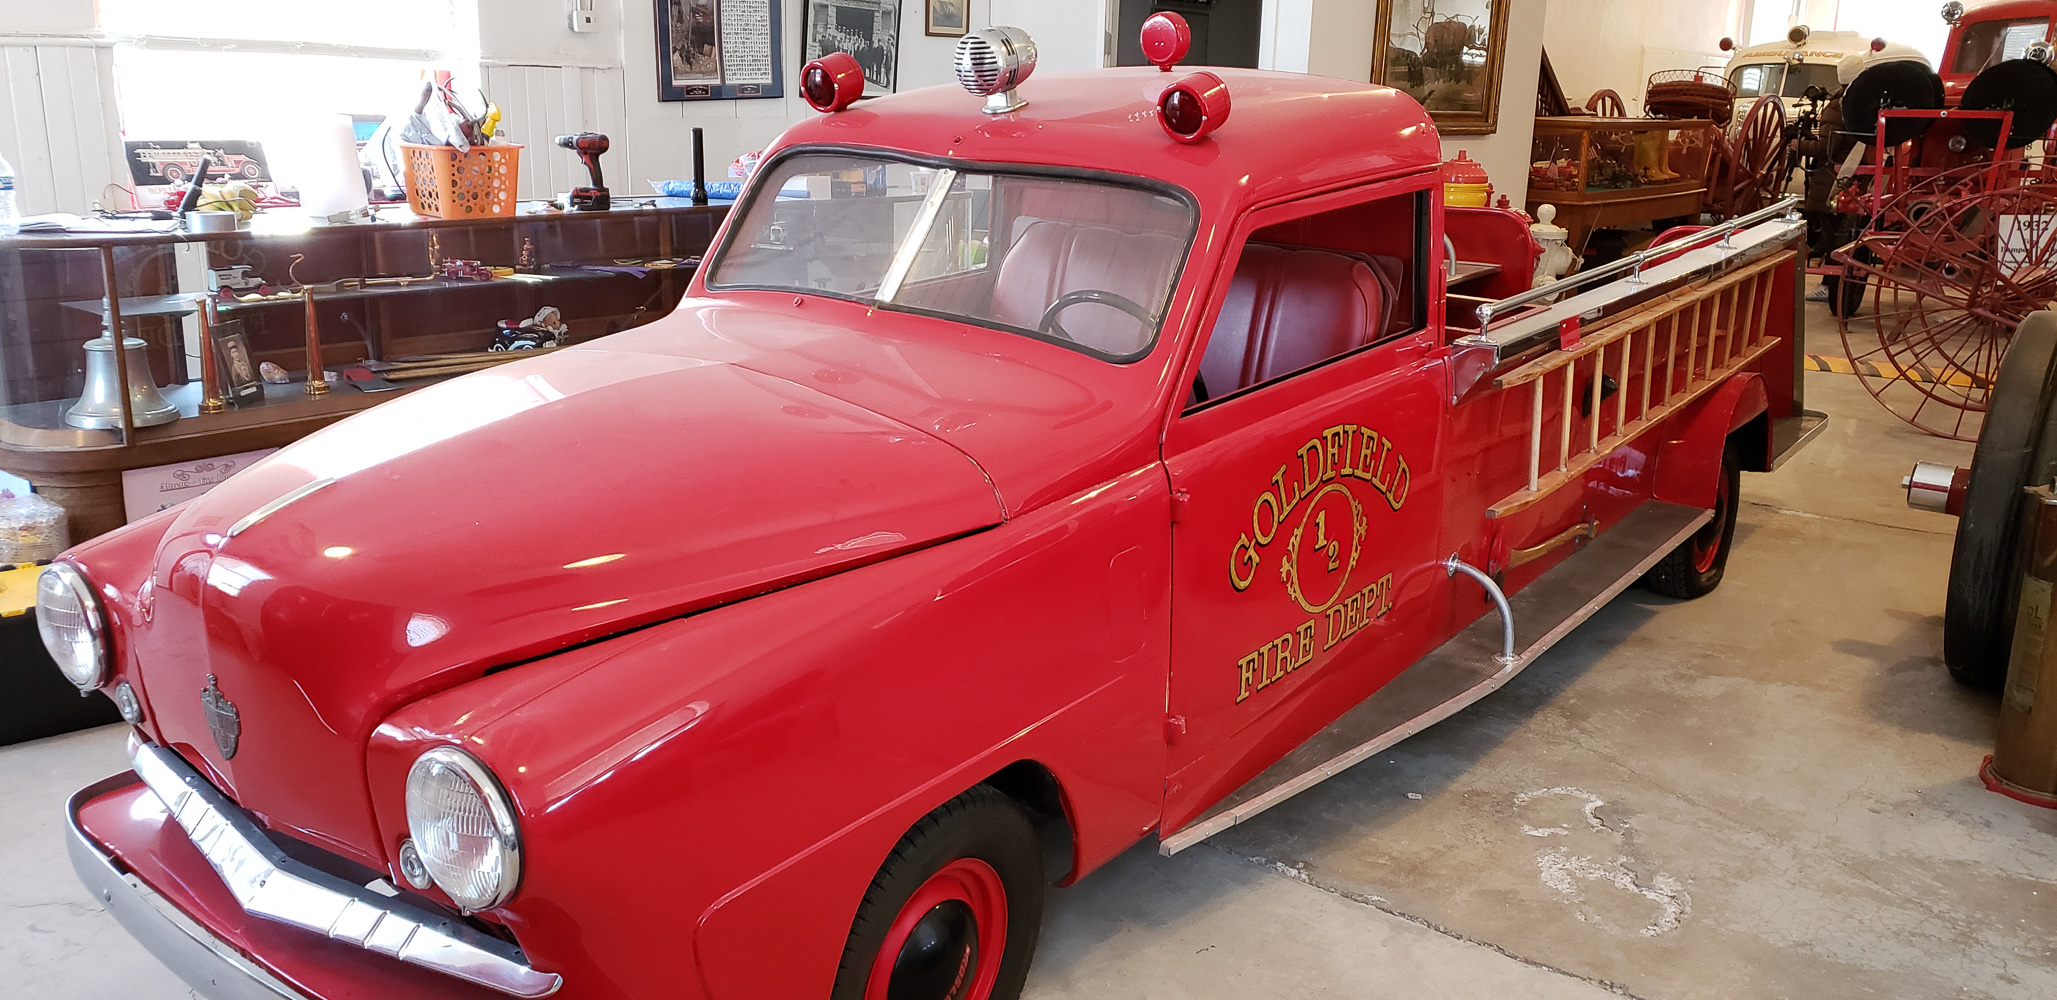 Goldfield Nevada Fire Station #1 Museum